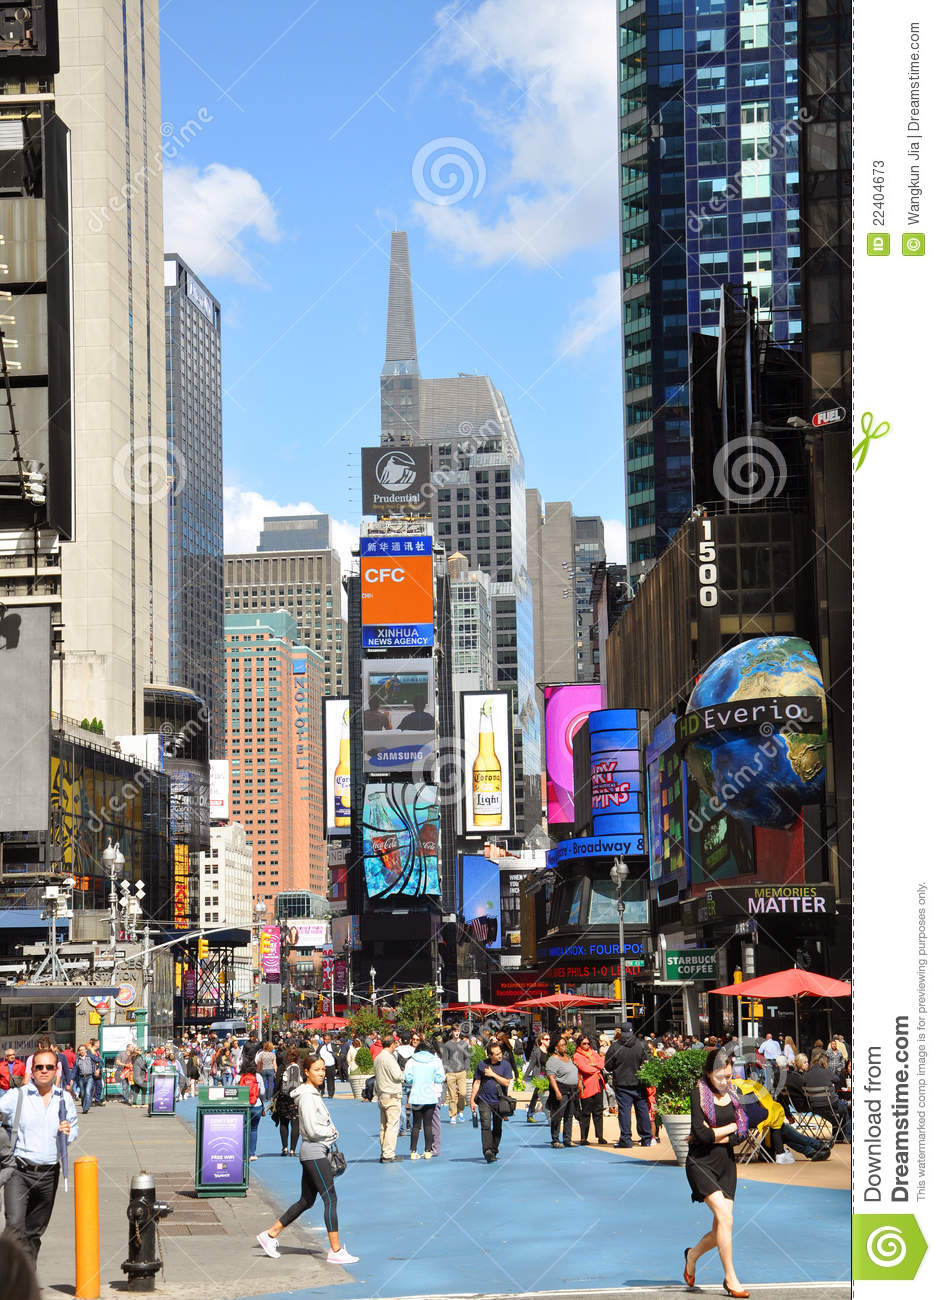 Broadway and Times Square, New York City